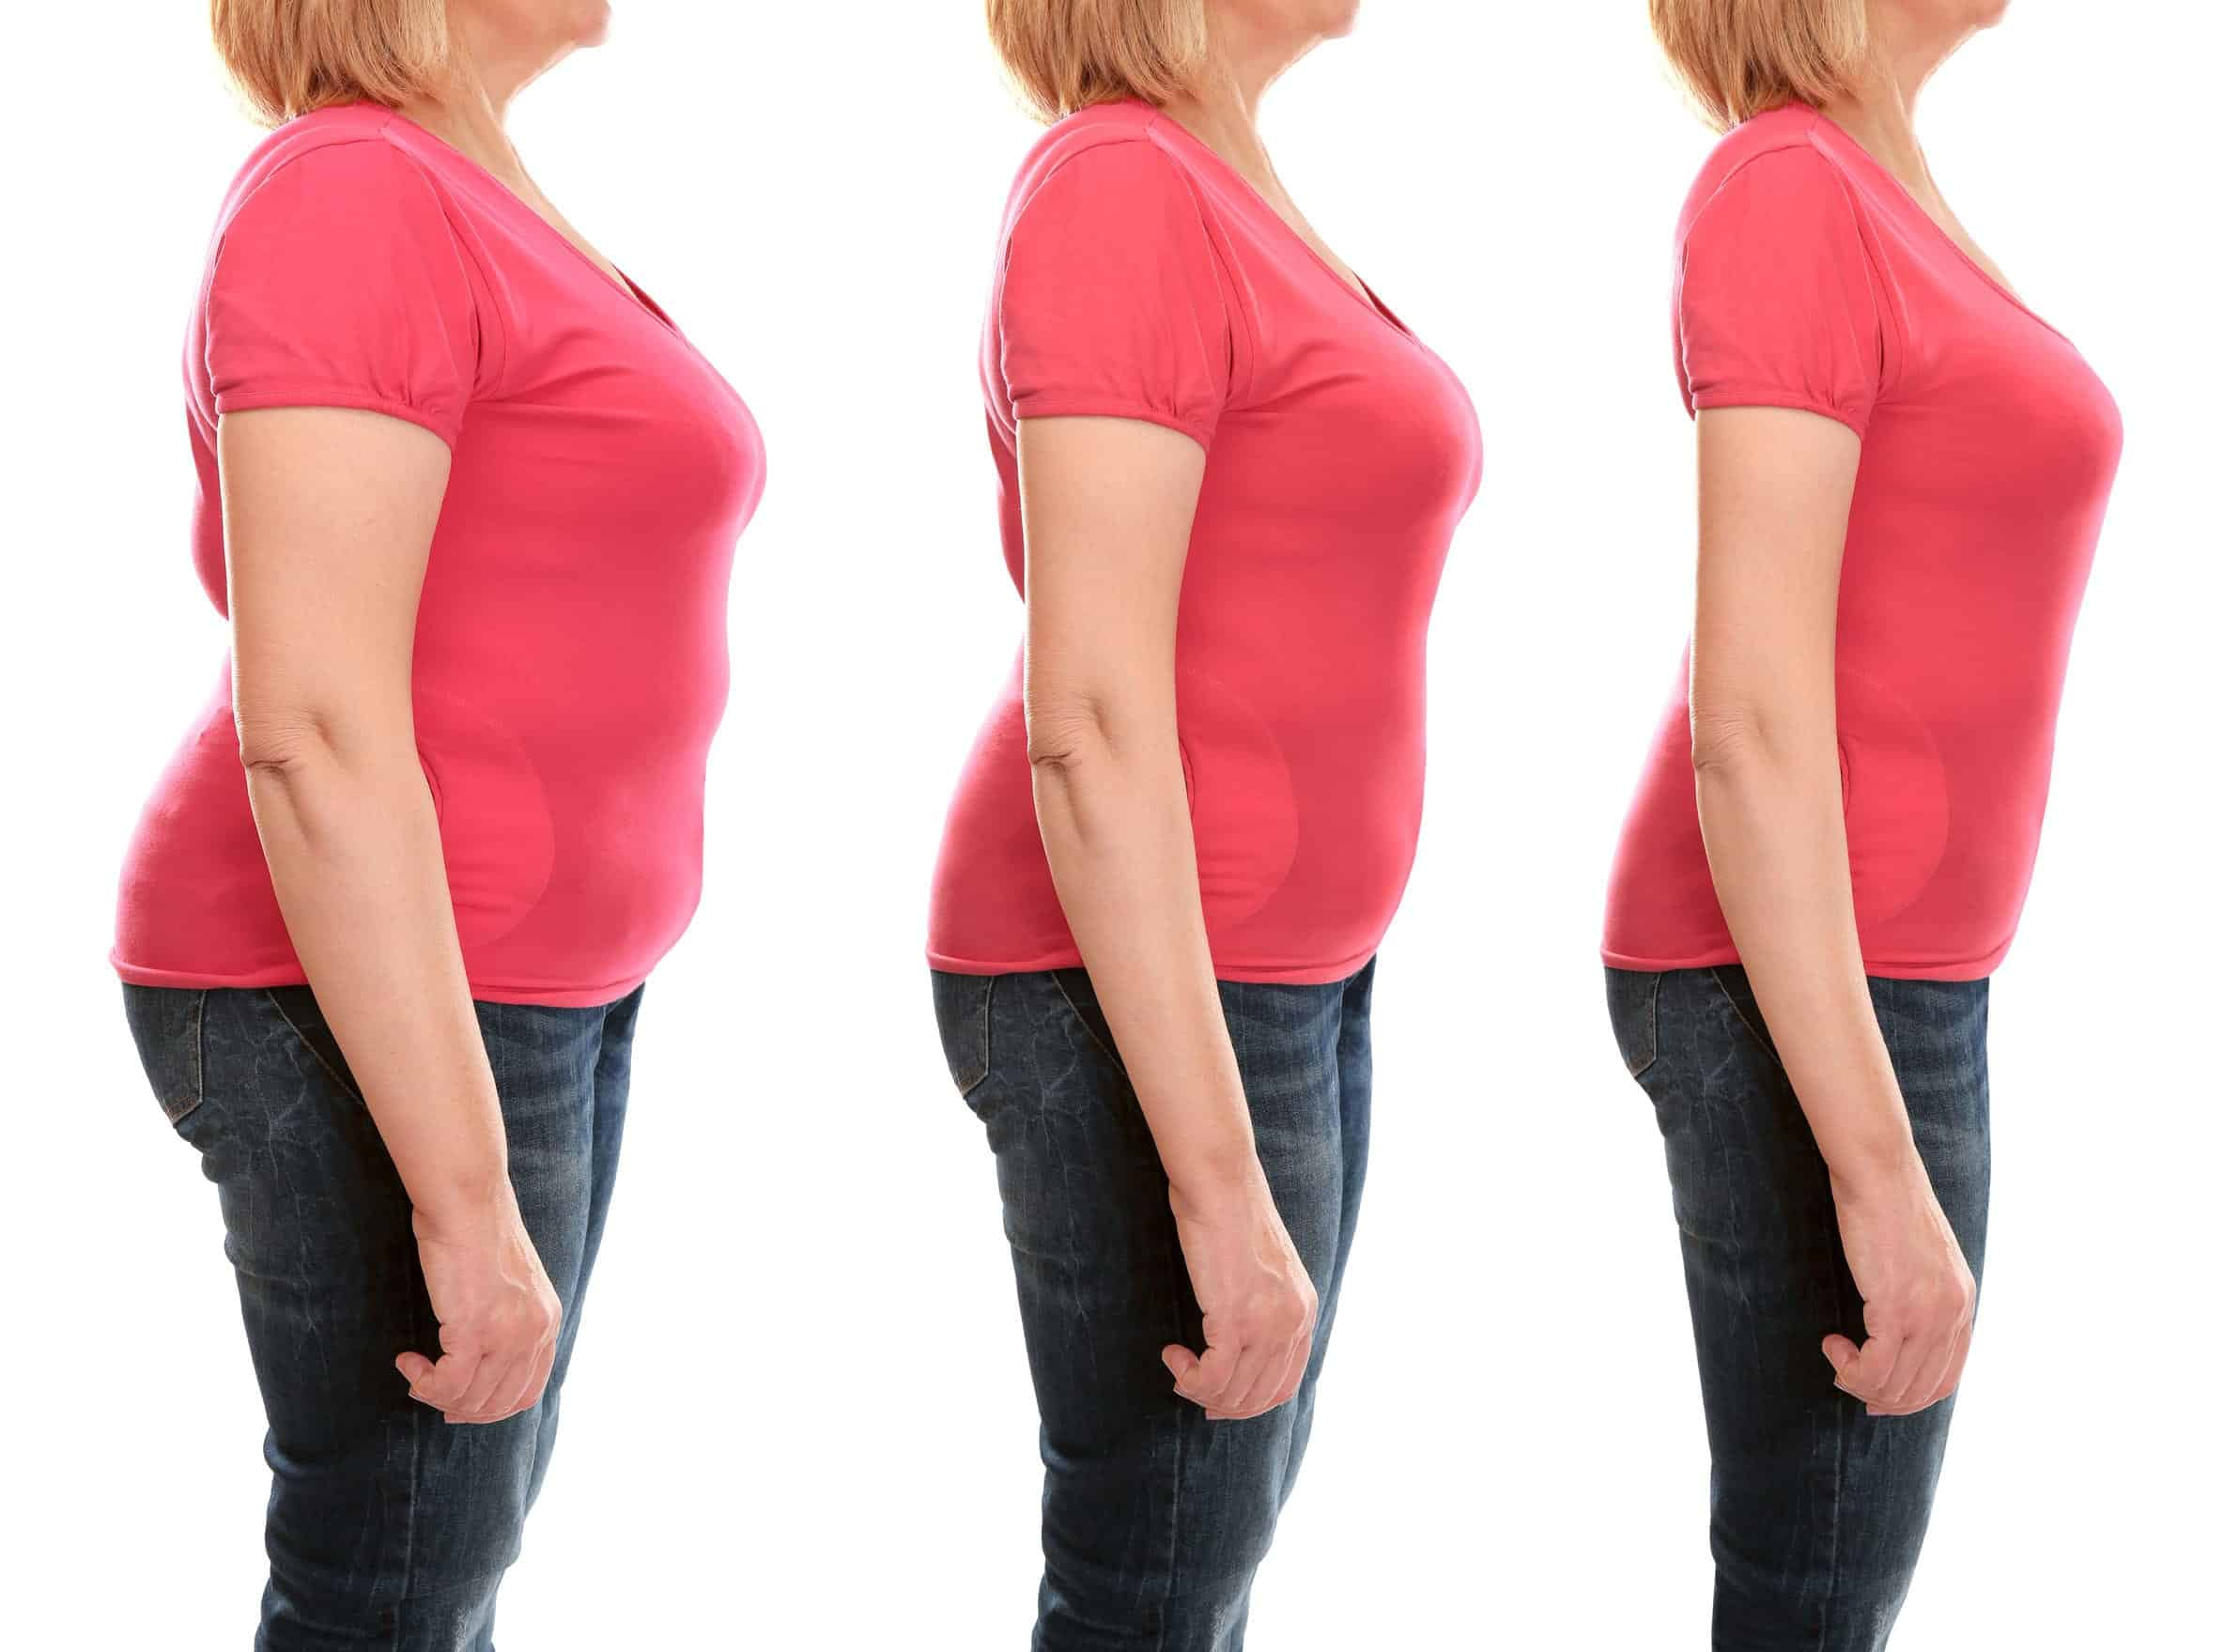 5 Common Areas of Body Fat CoolTech Can Target